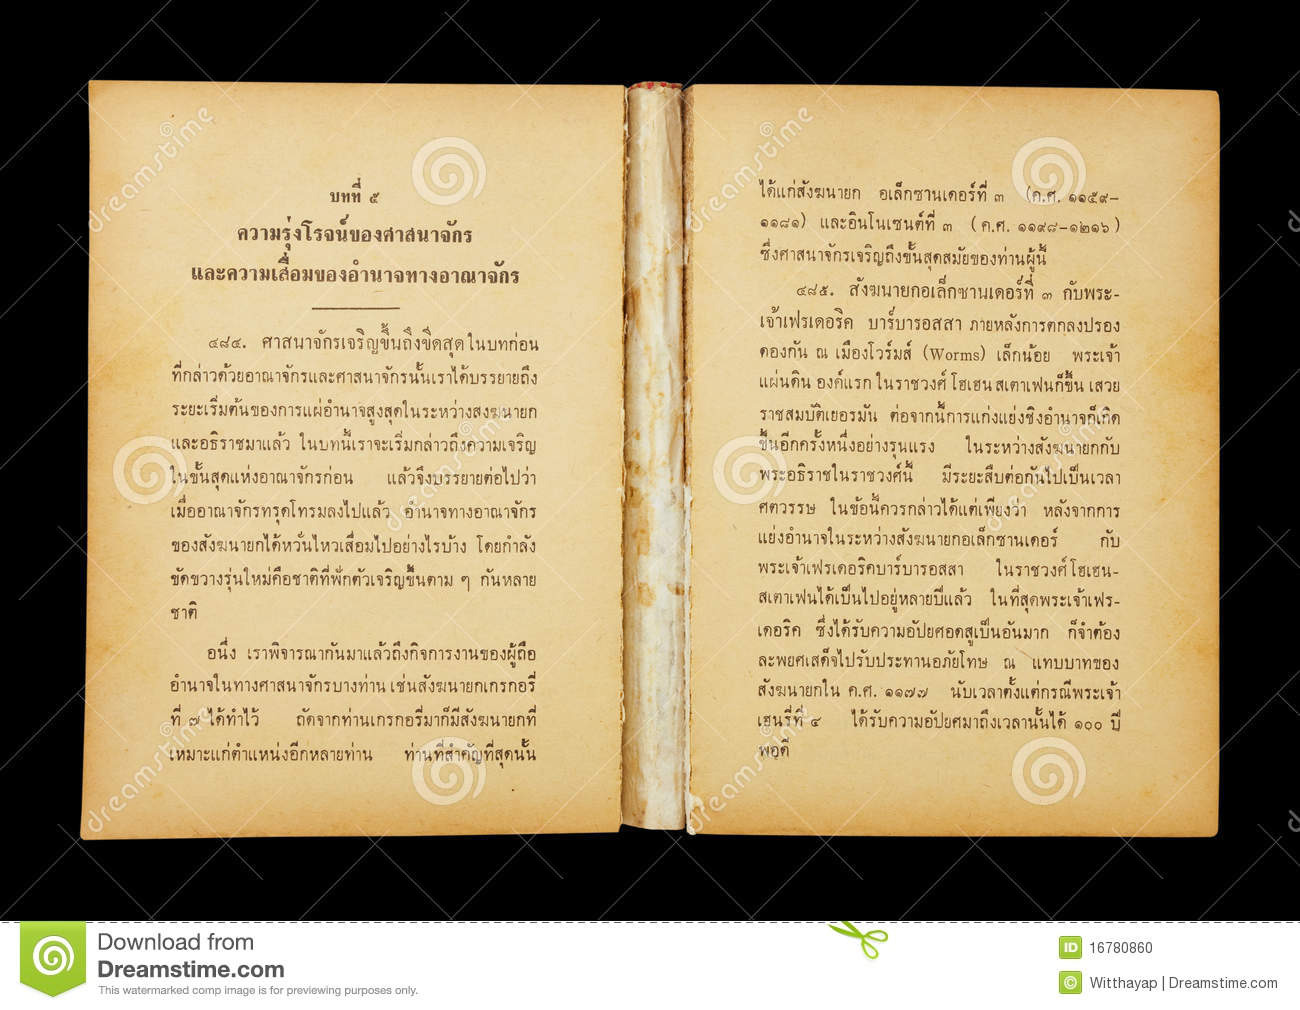 Why Learning Thai Using PDF Lessons is Practical and Efficient